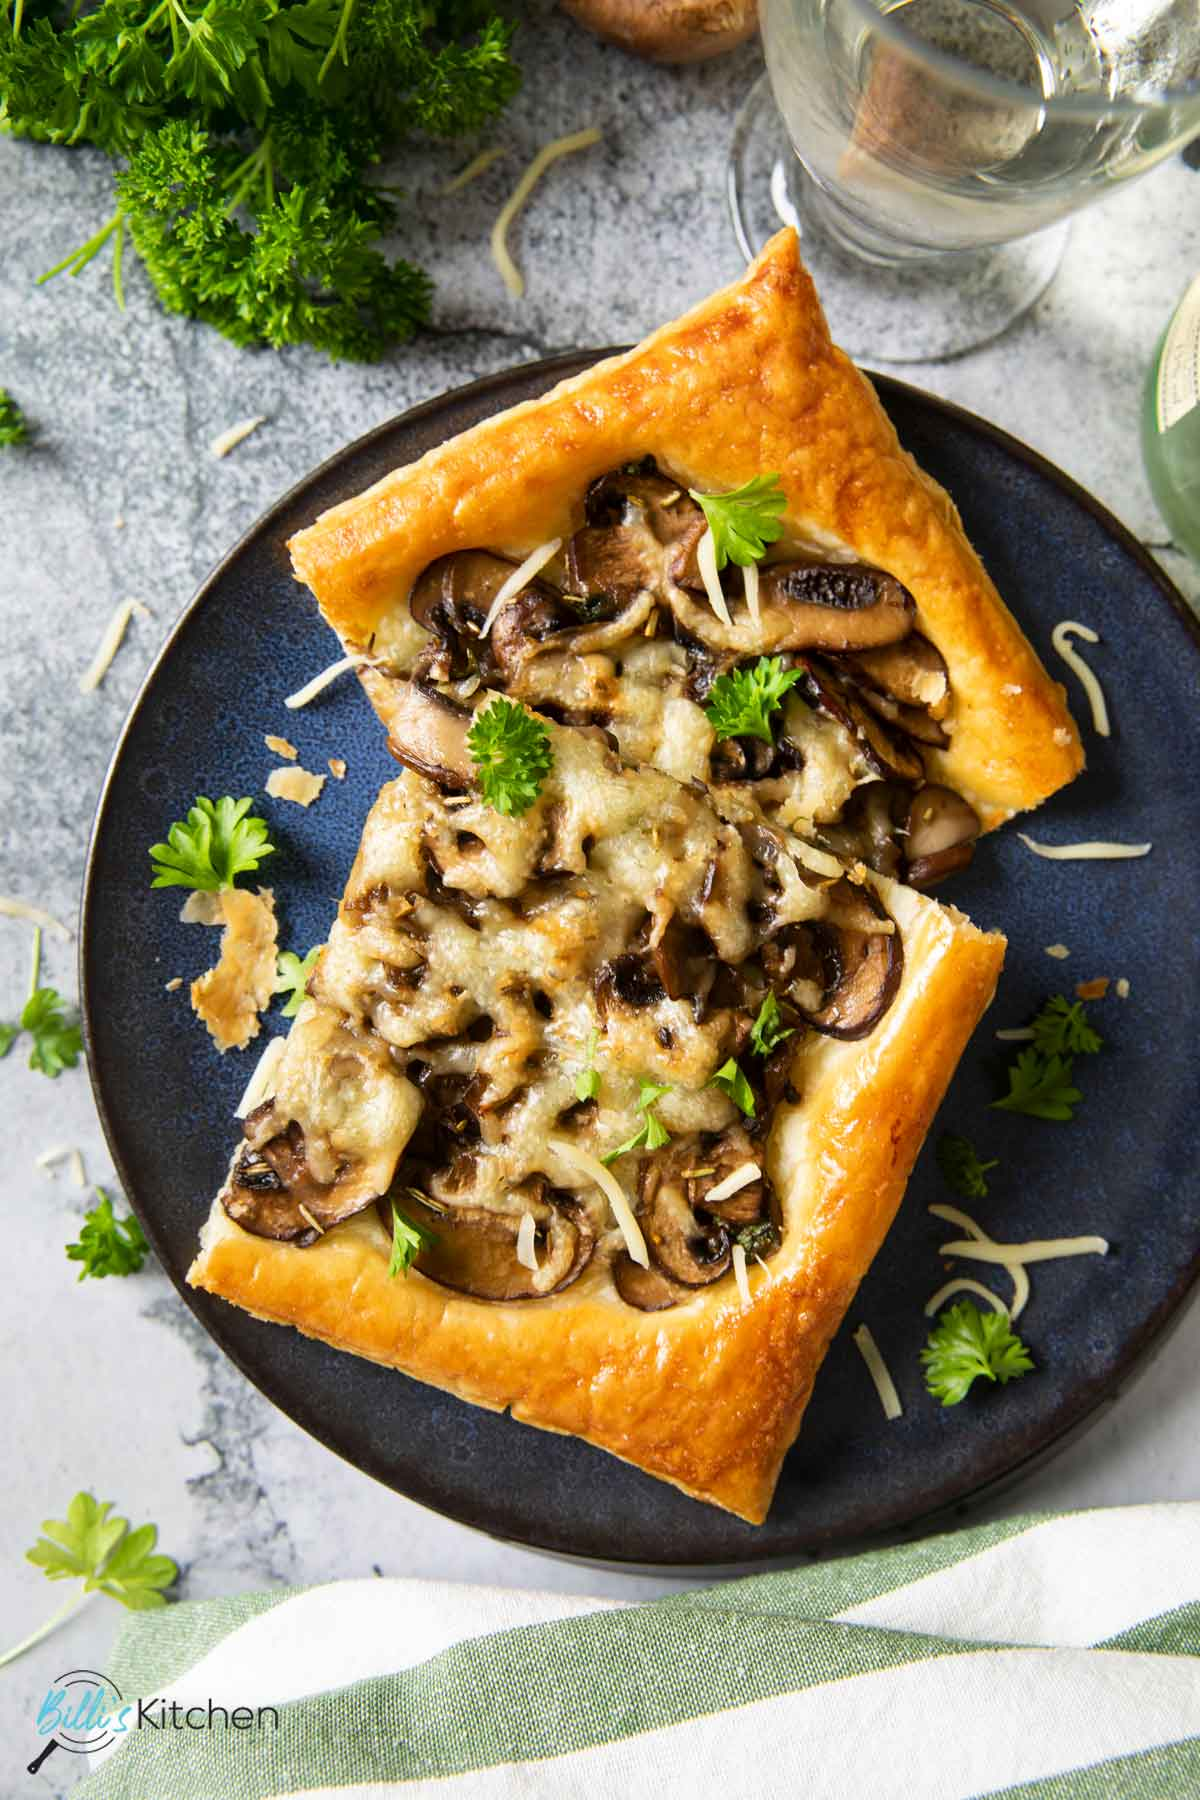 A couple of slices of mushroom tart, served with a glass of white wine.